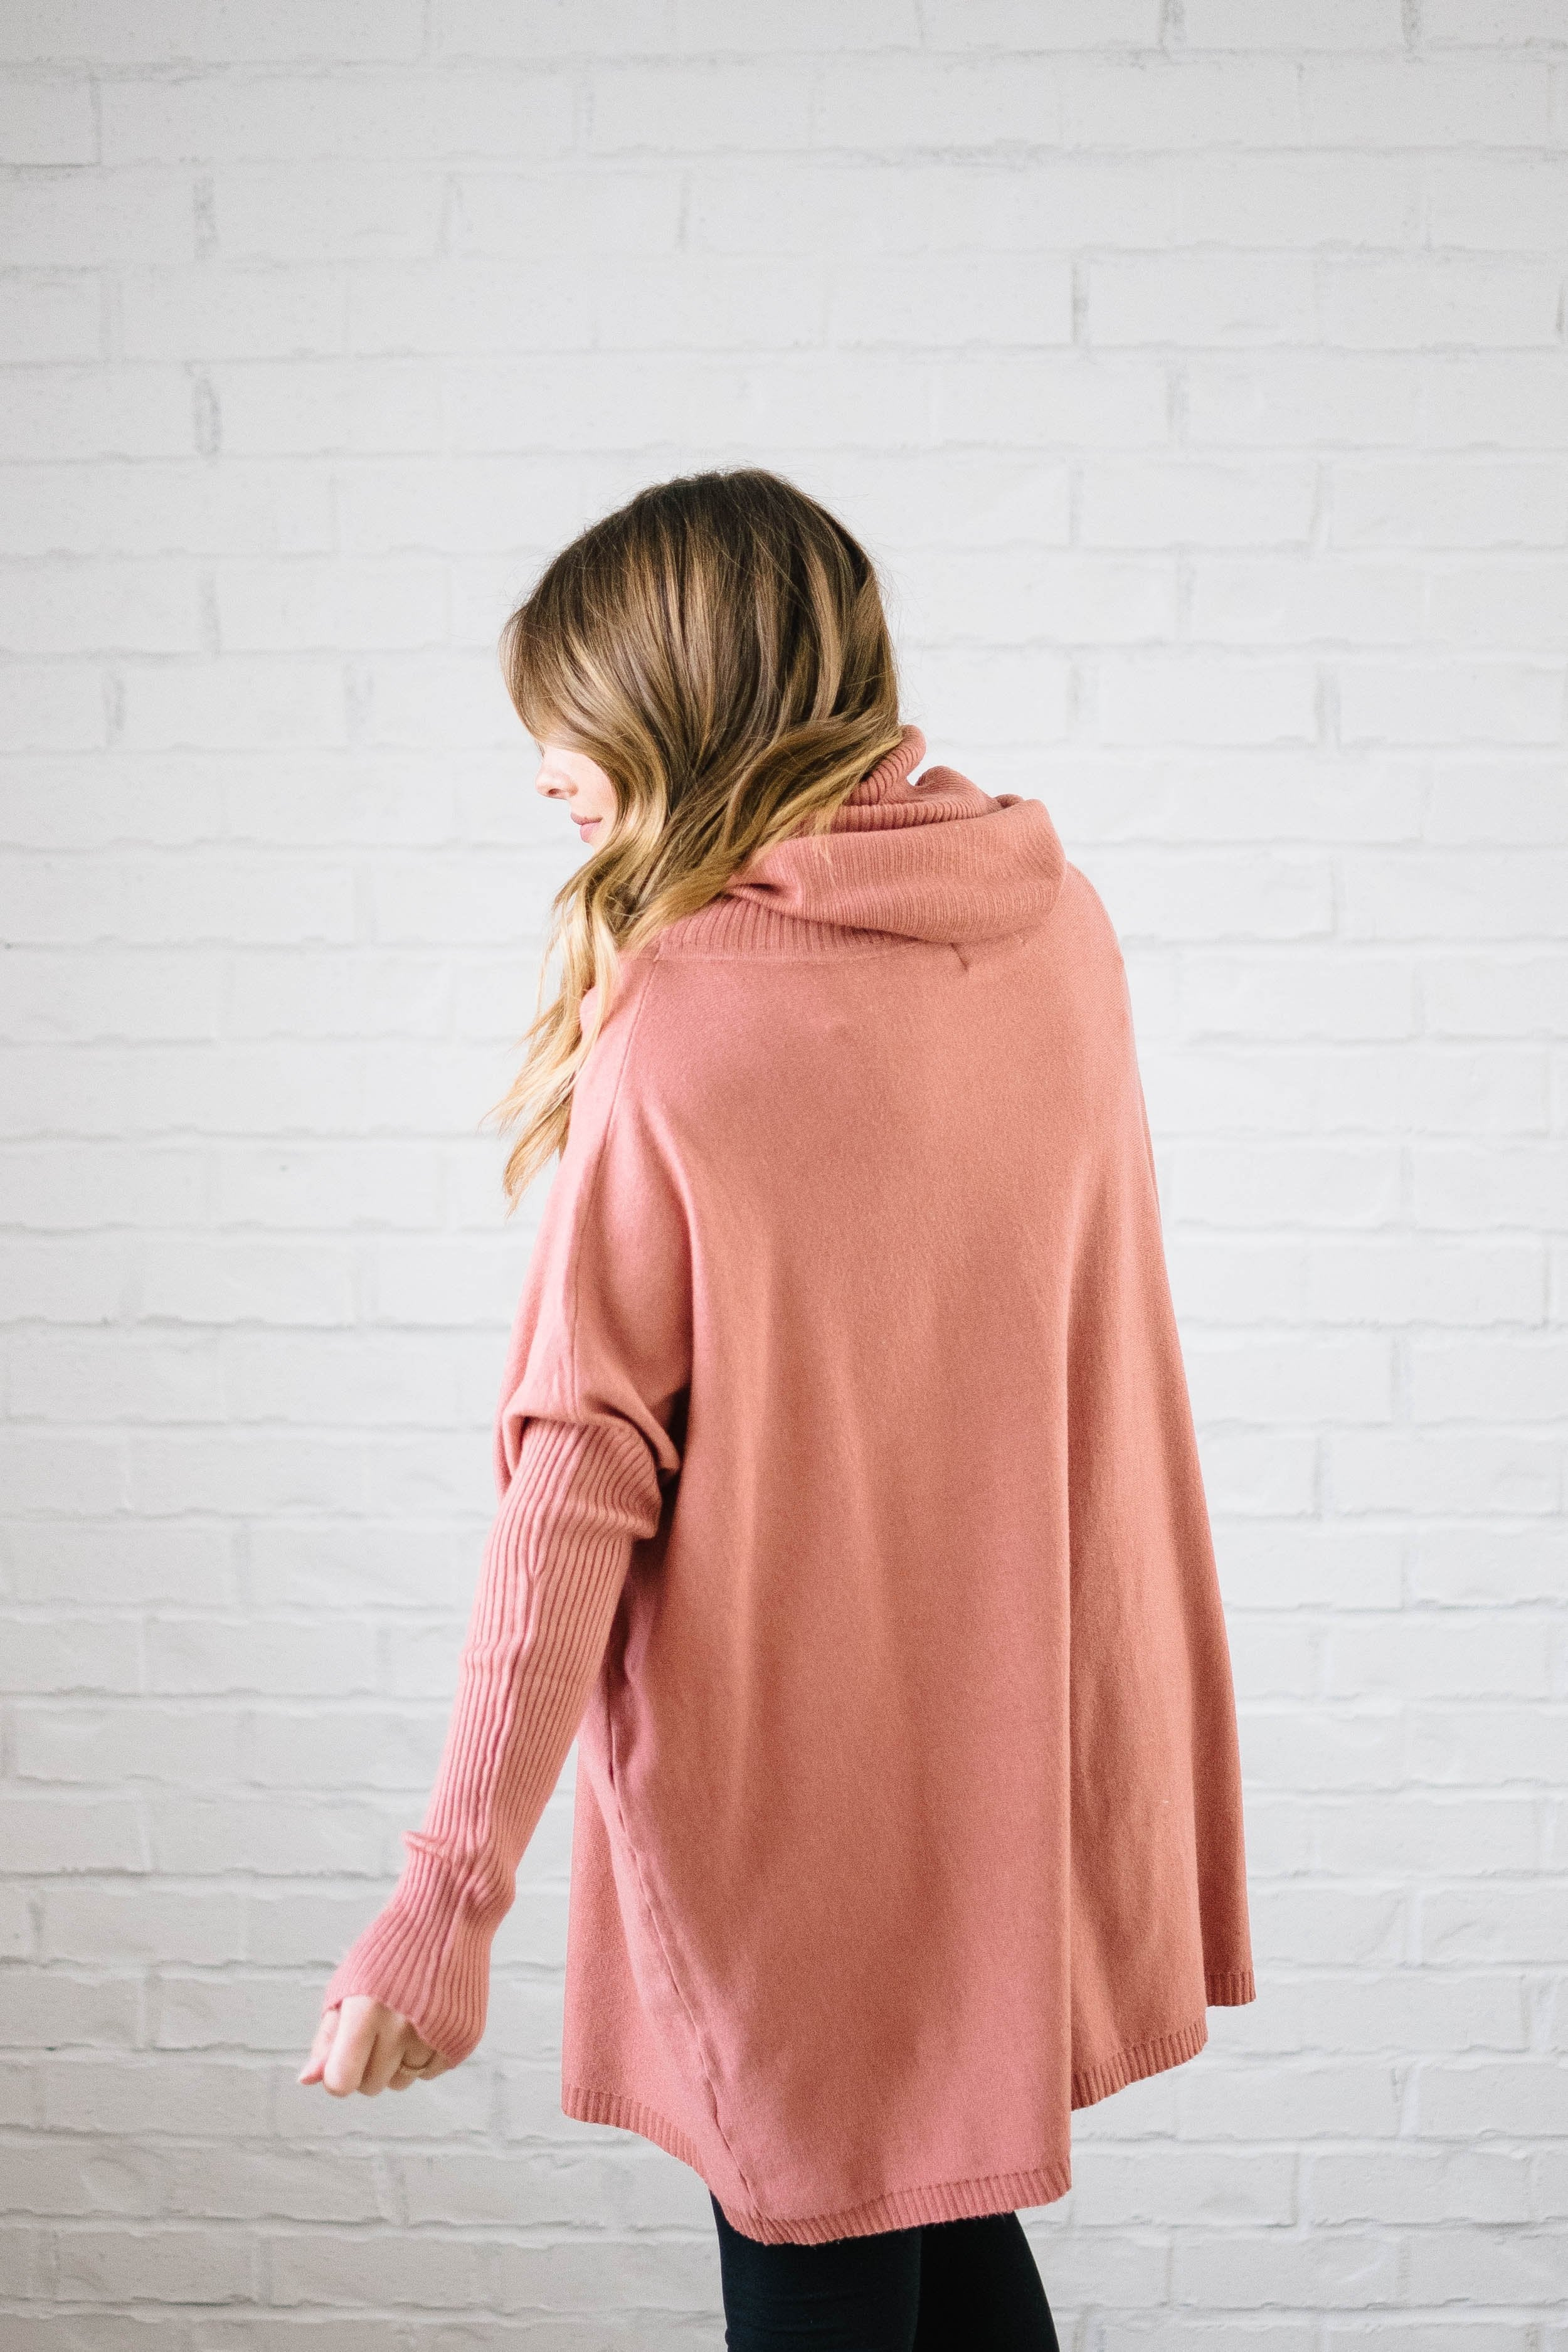 The Cassidy Cowl Neck Sweater in Salmon